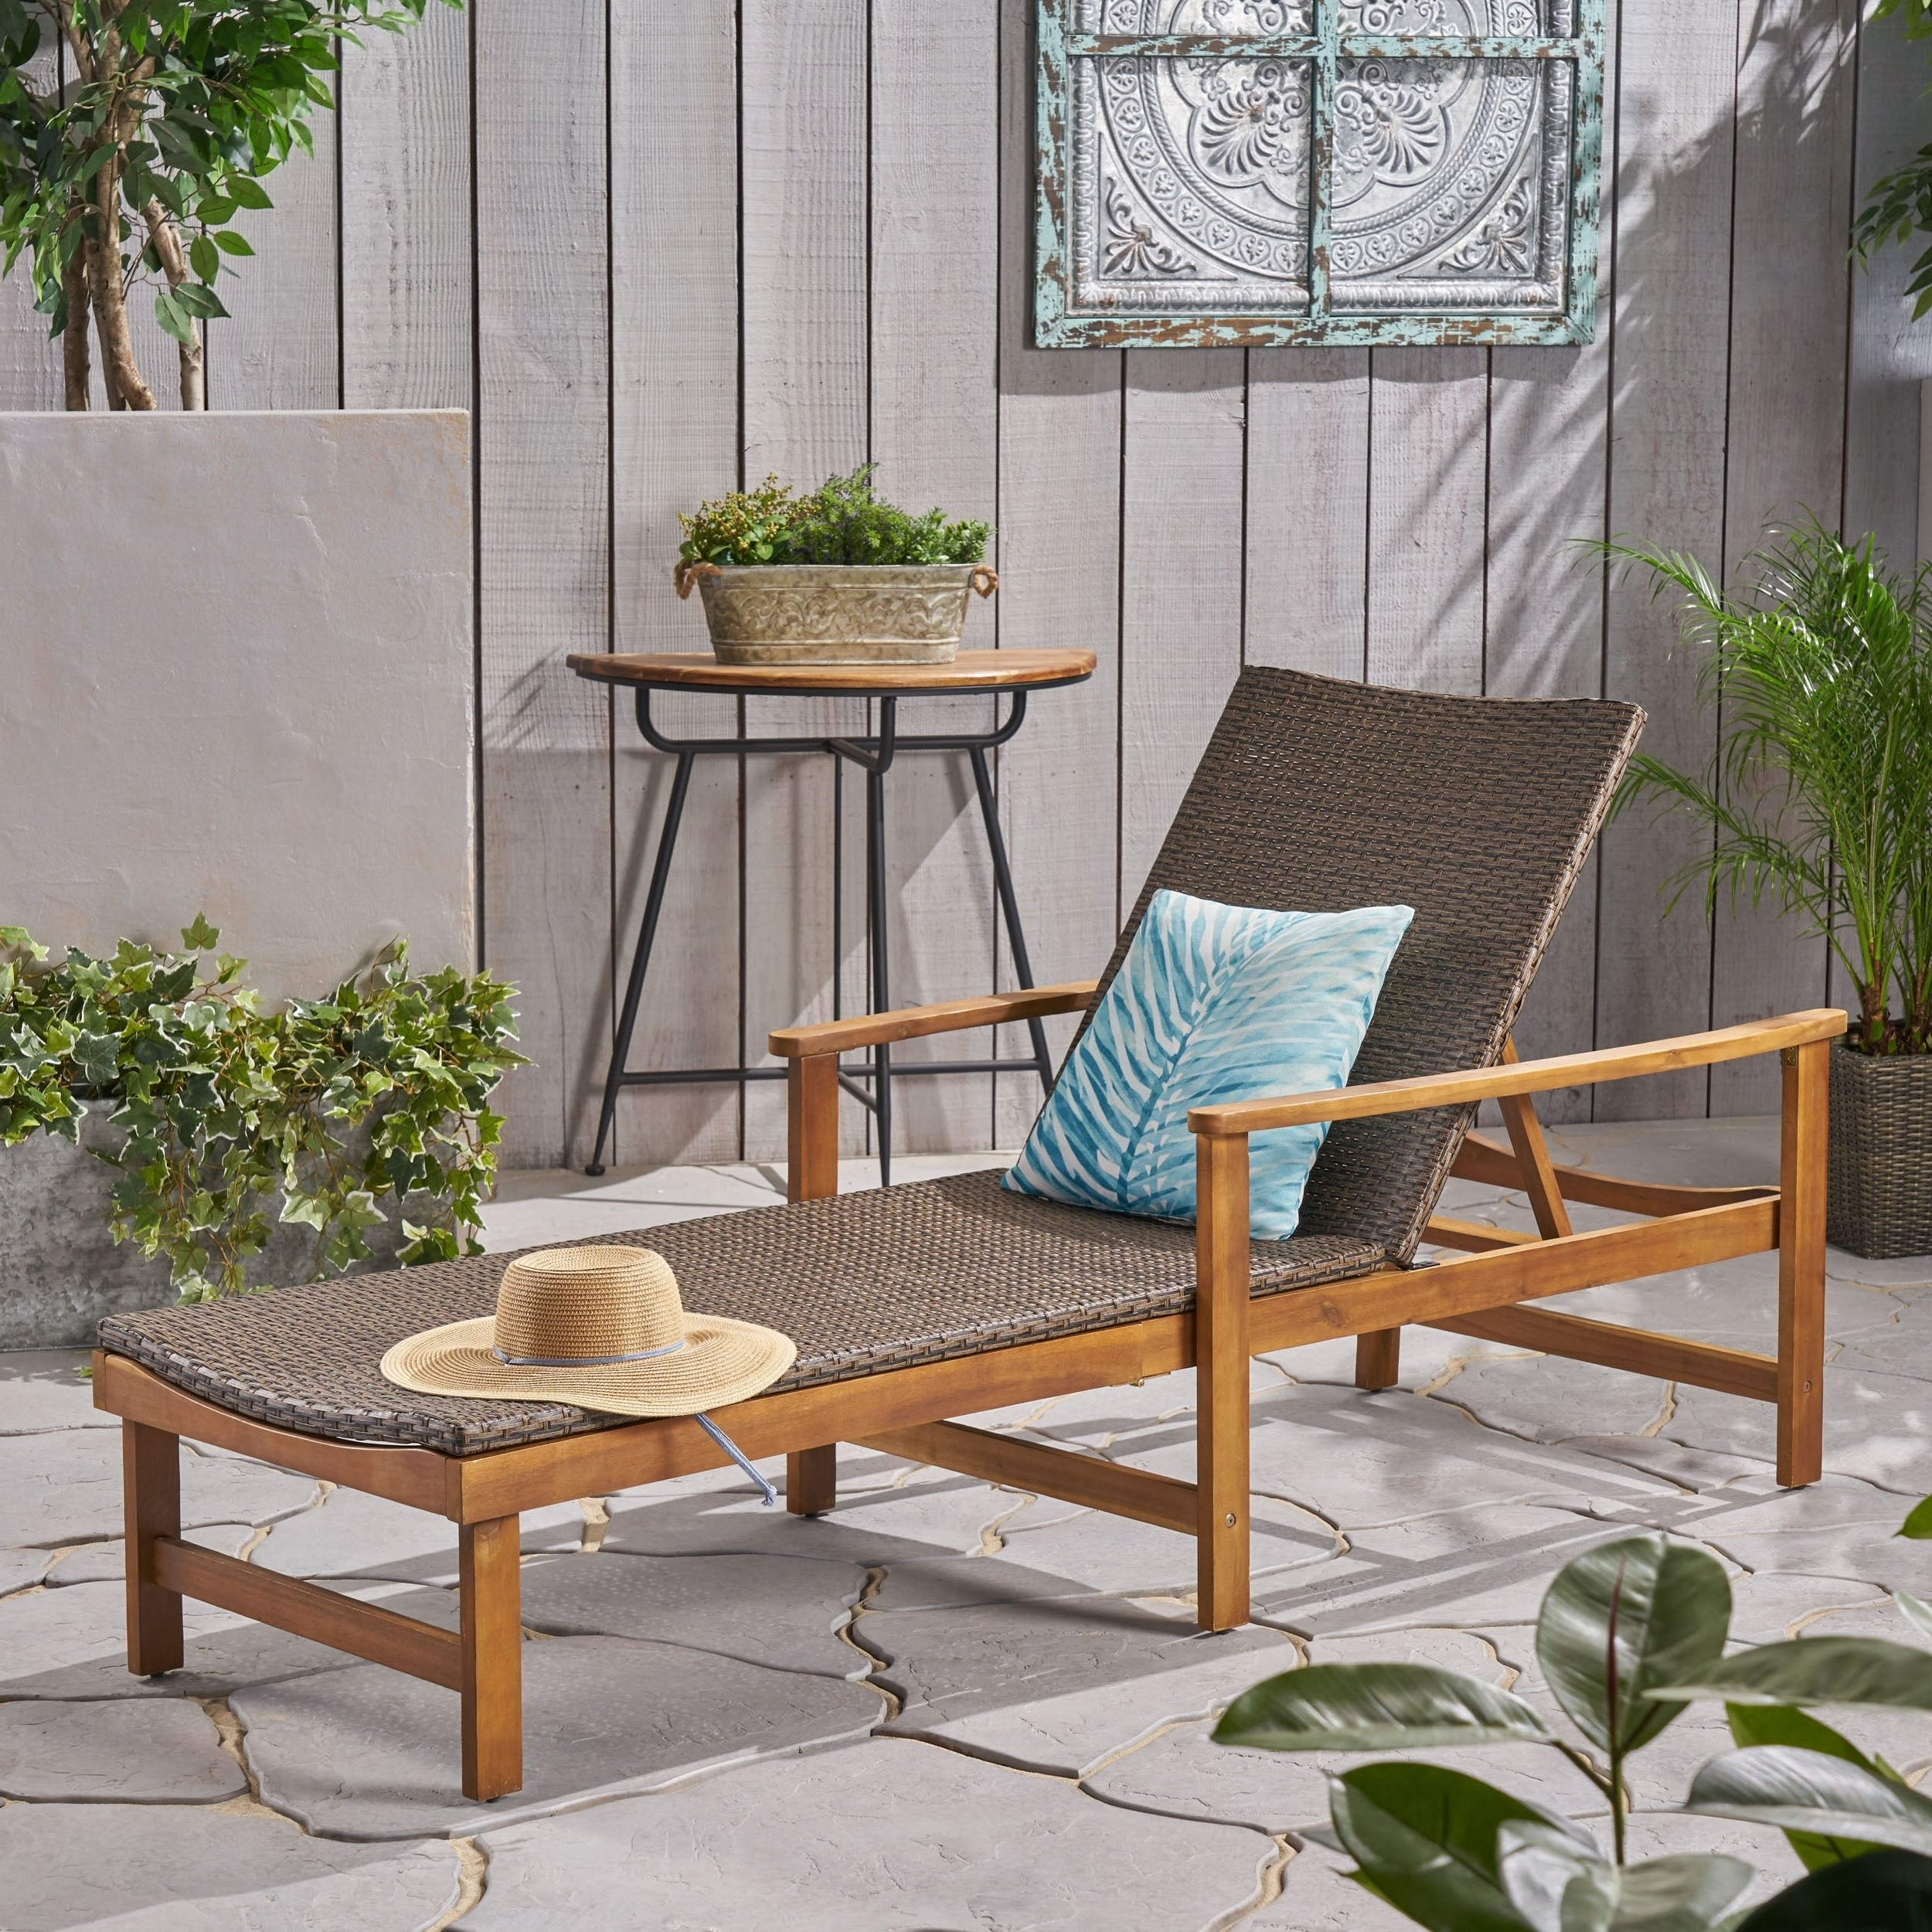 Featured Photo of Outdoor Rustic Acacia Wood Chaise Lounges With Wicker Seat